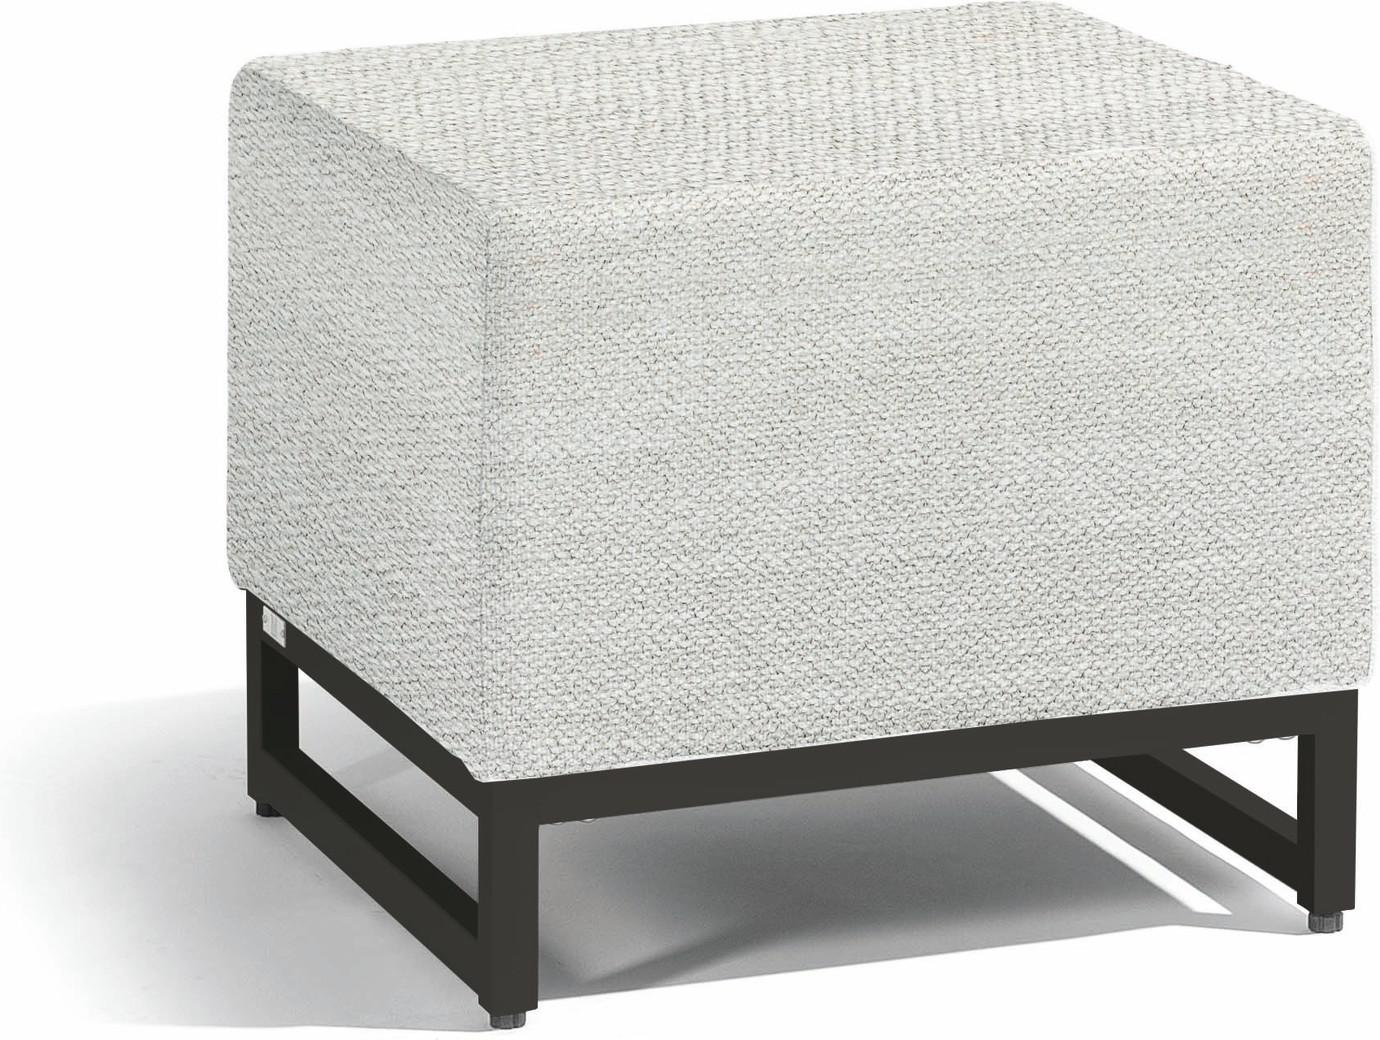 Zendo small footstool seat - lava - lotus smokey